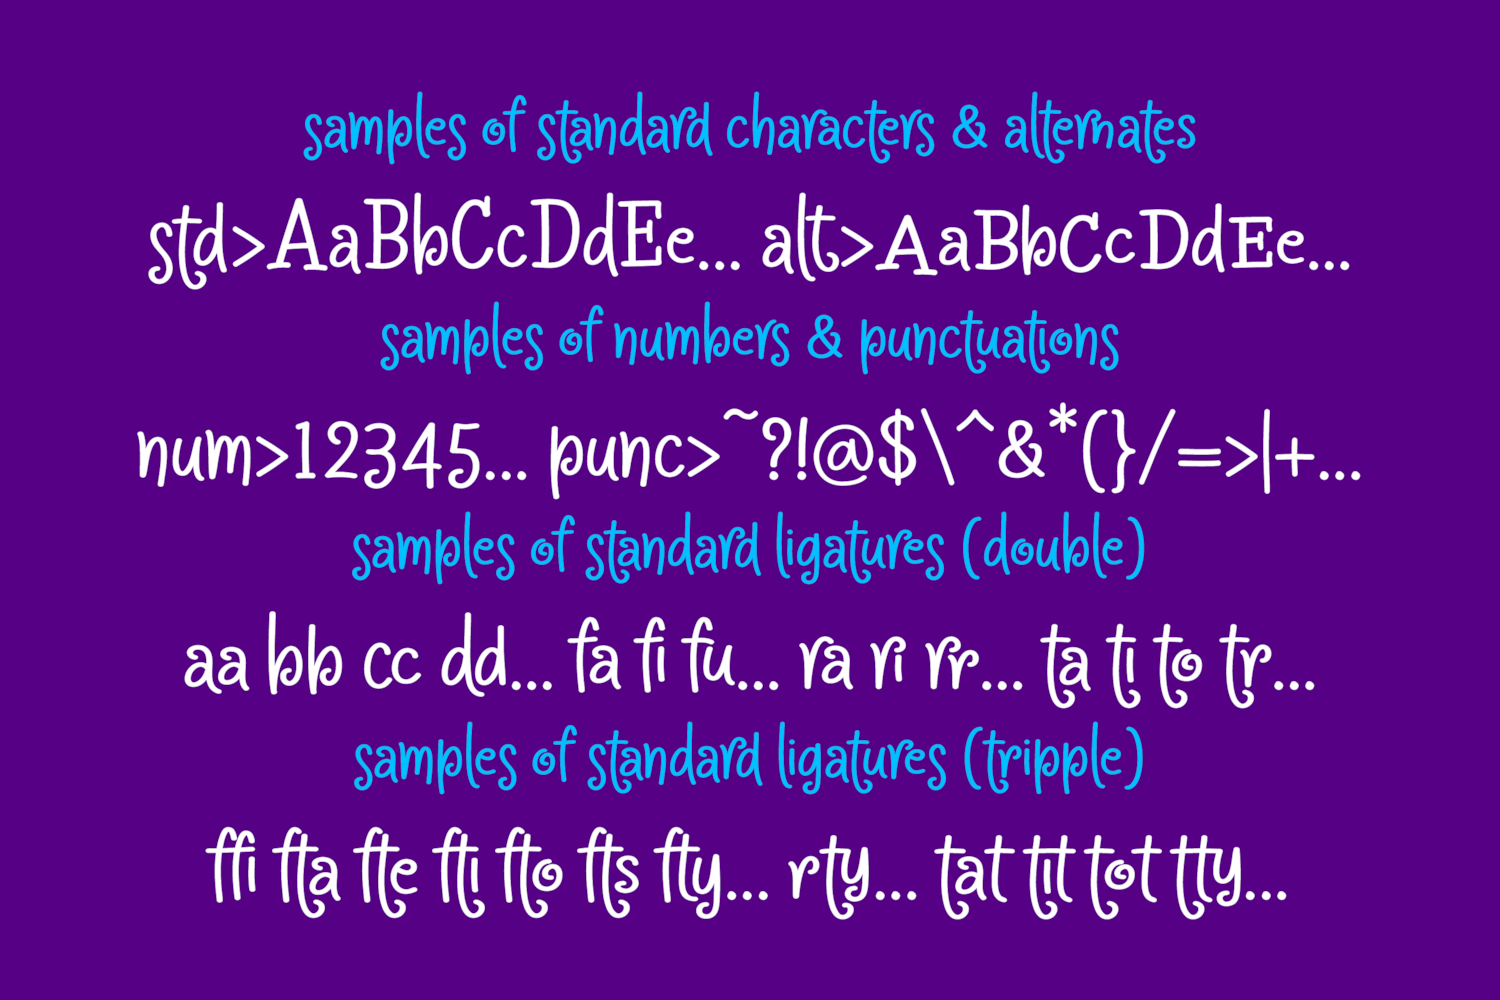 Crapty - a Playful Font with Cute Alternates & Ligatures example image 9